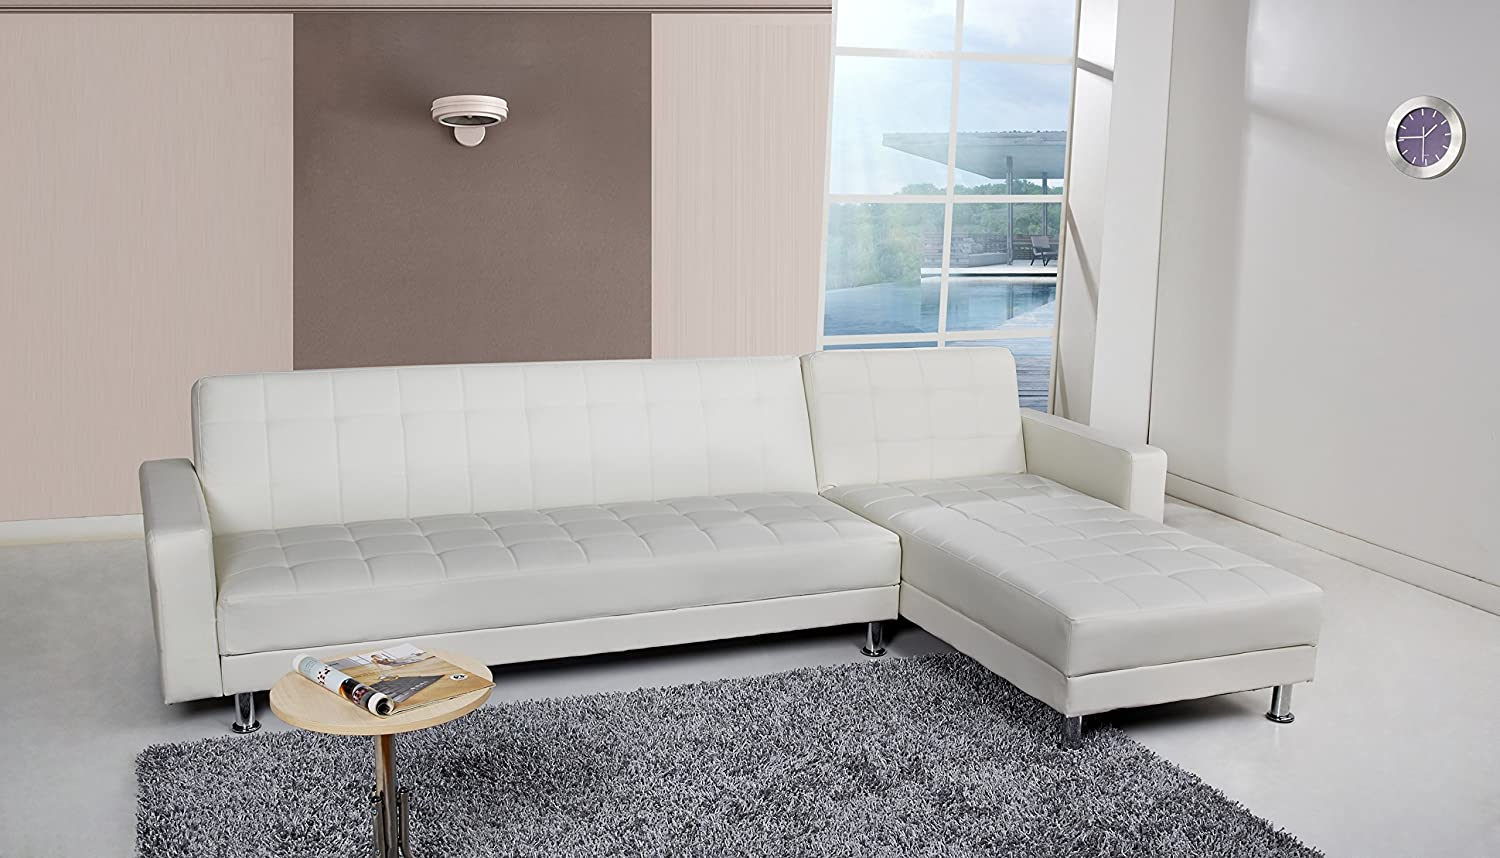 Amazon.com: Gold Sparrow Frankfort Convertible Sectional Sofa Bed, White:  Home U0026 Kitchen